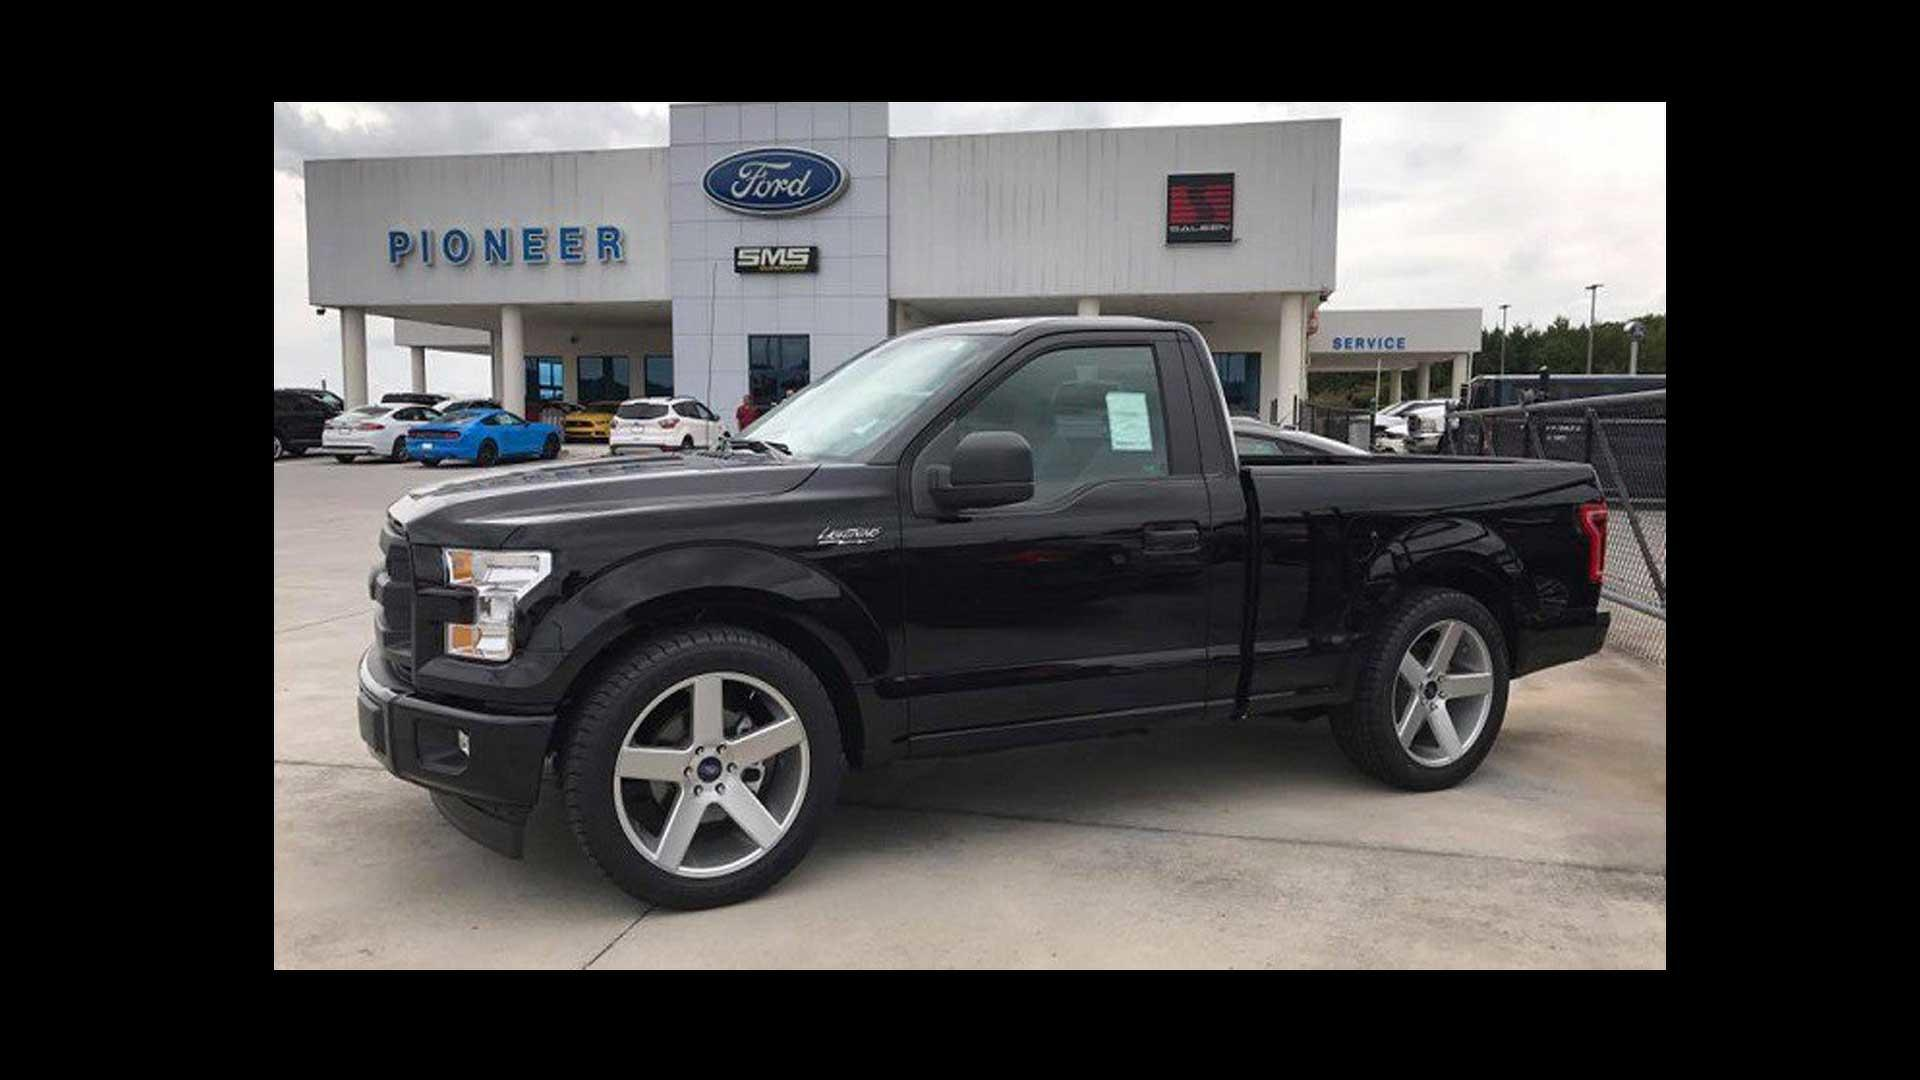 Georgia Ford Dealer Selling Modern Day Ford F 150 Lightning Trucks